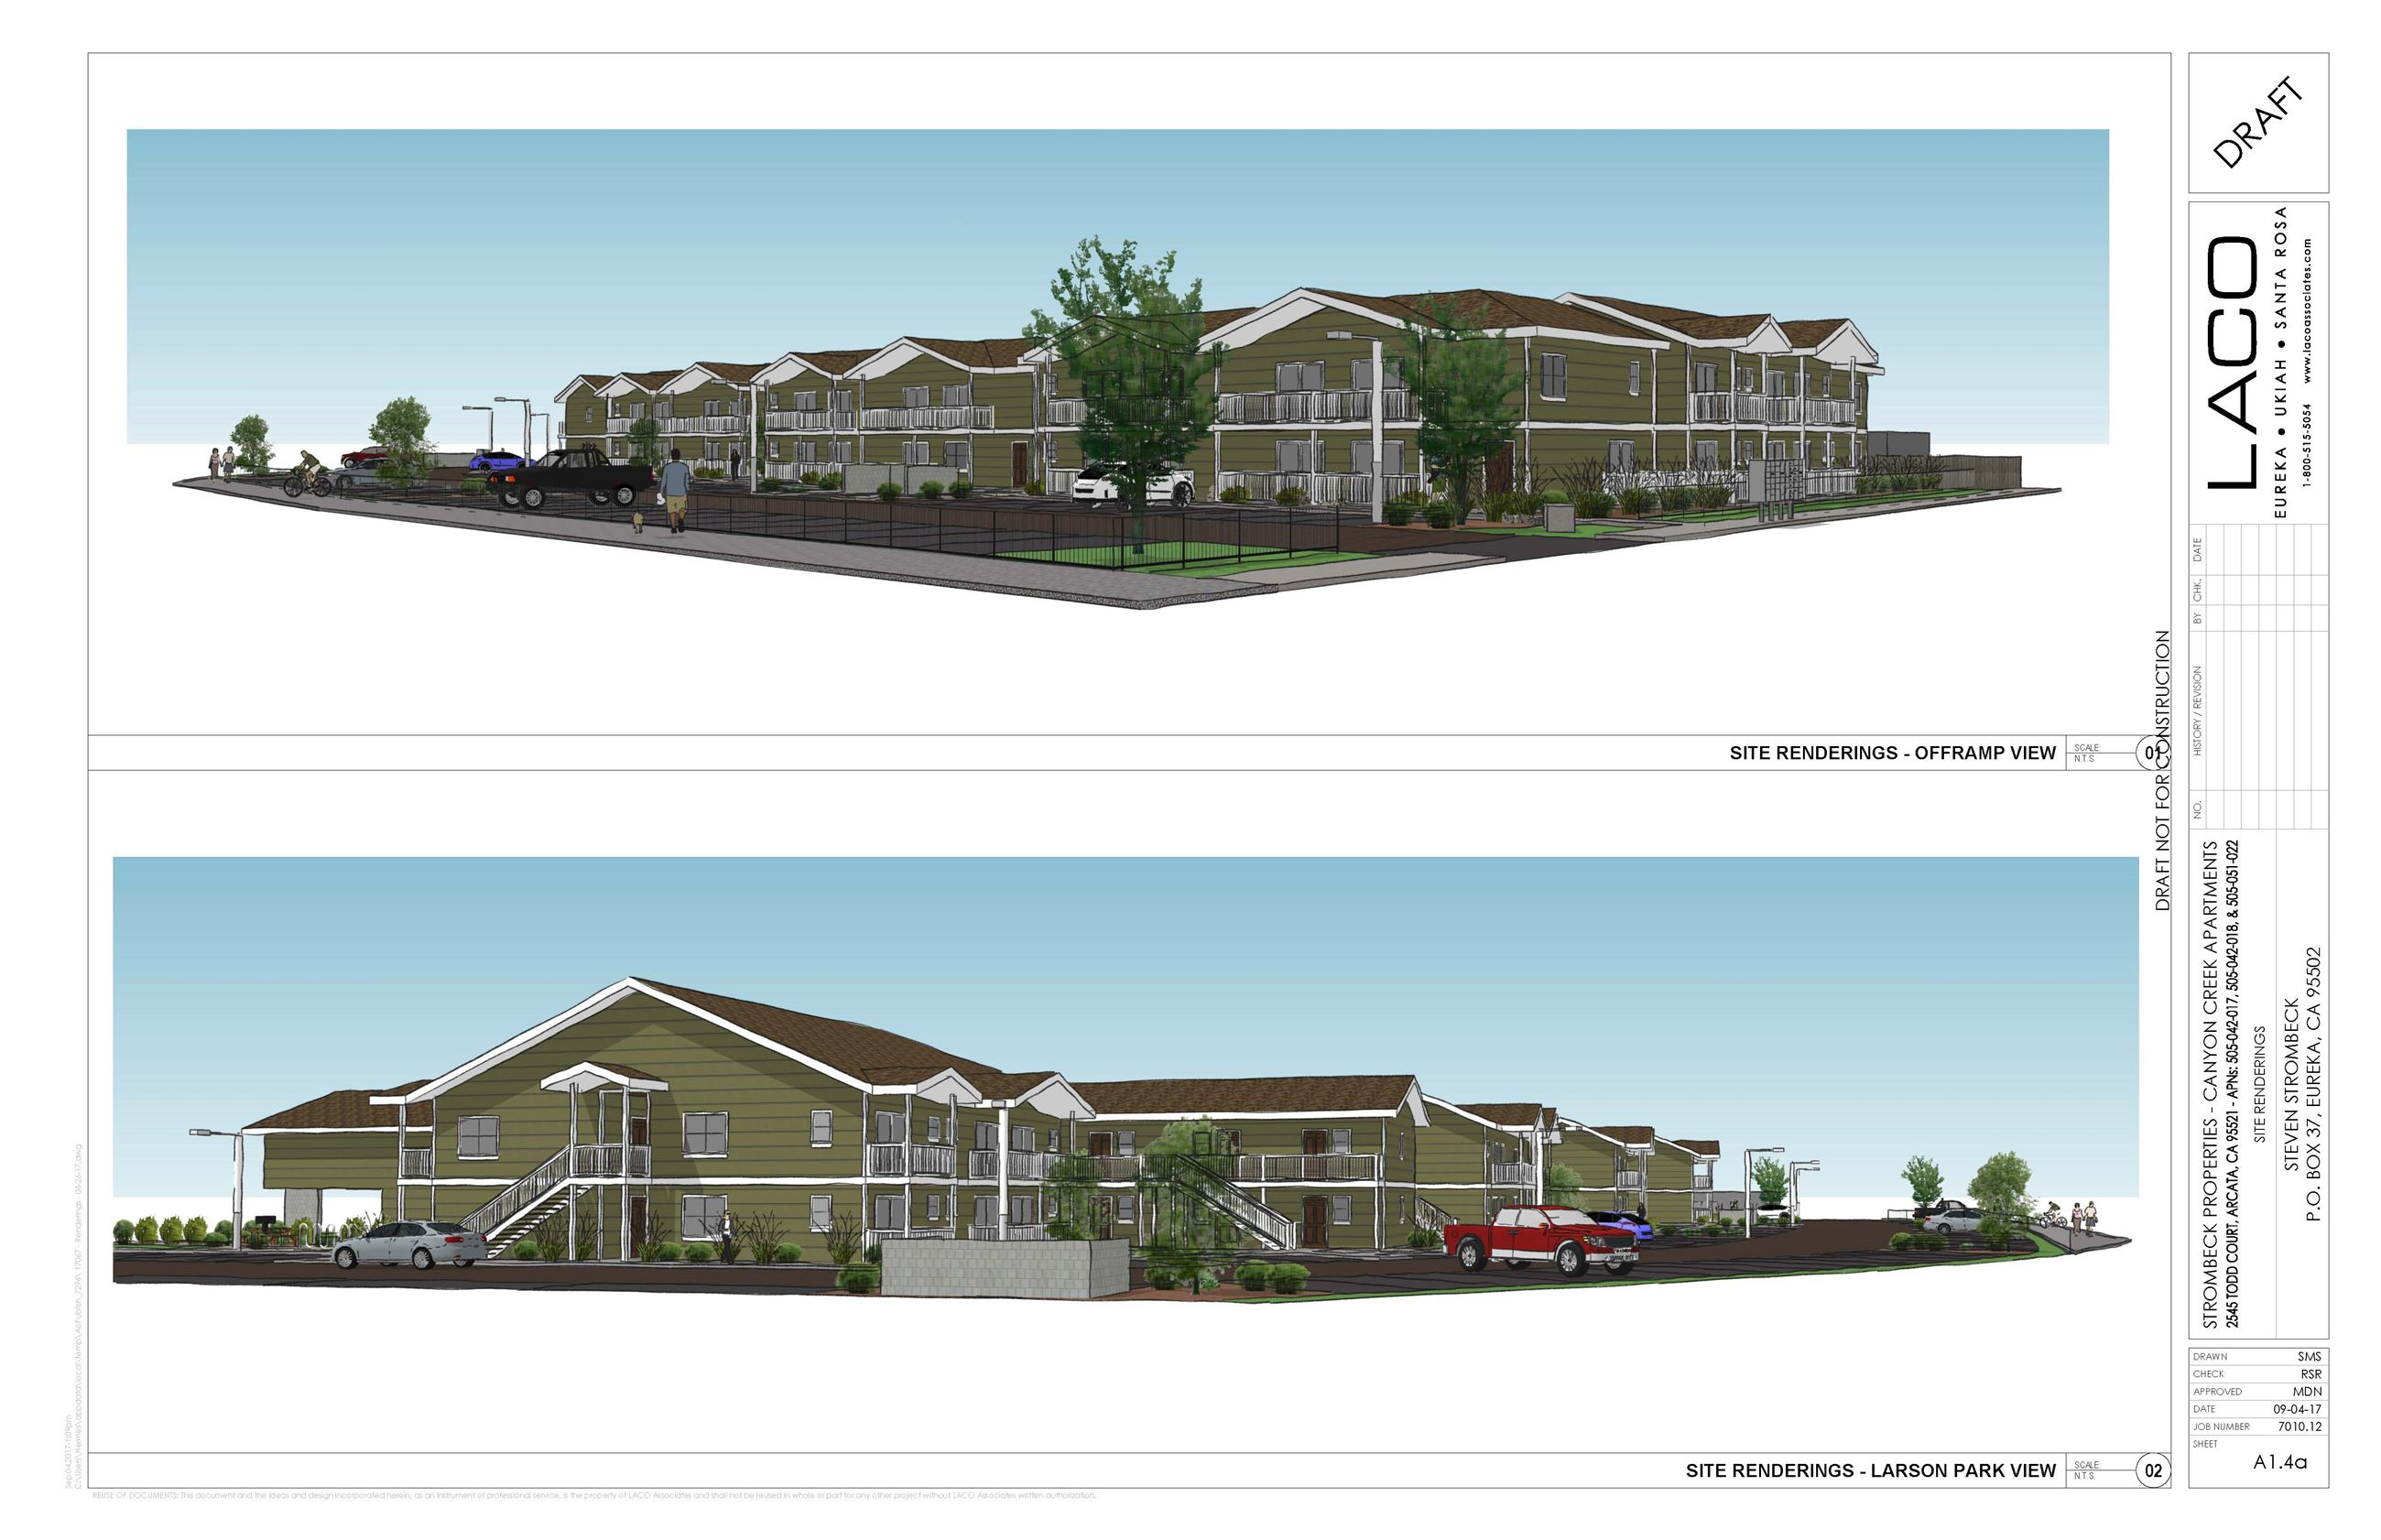 Proposed Site Renderings of Canyon Creek Apartments